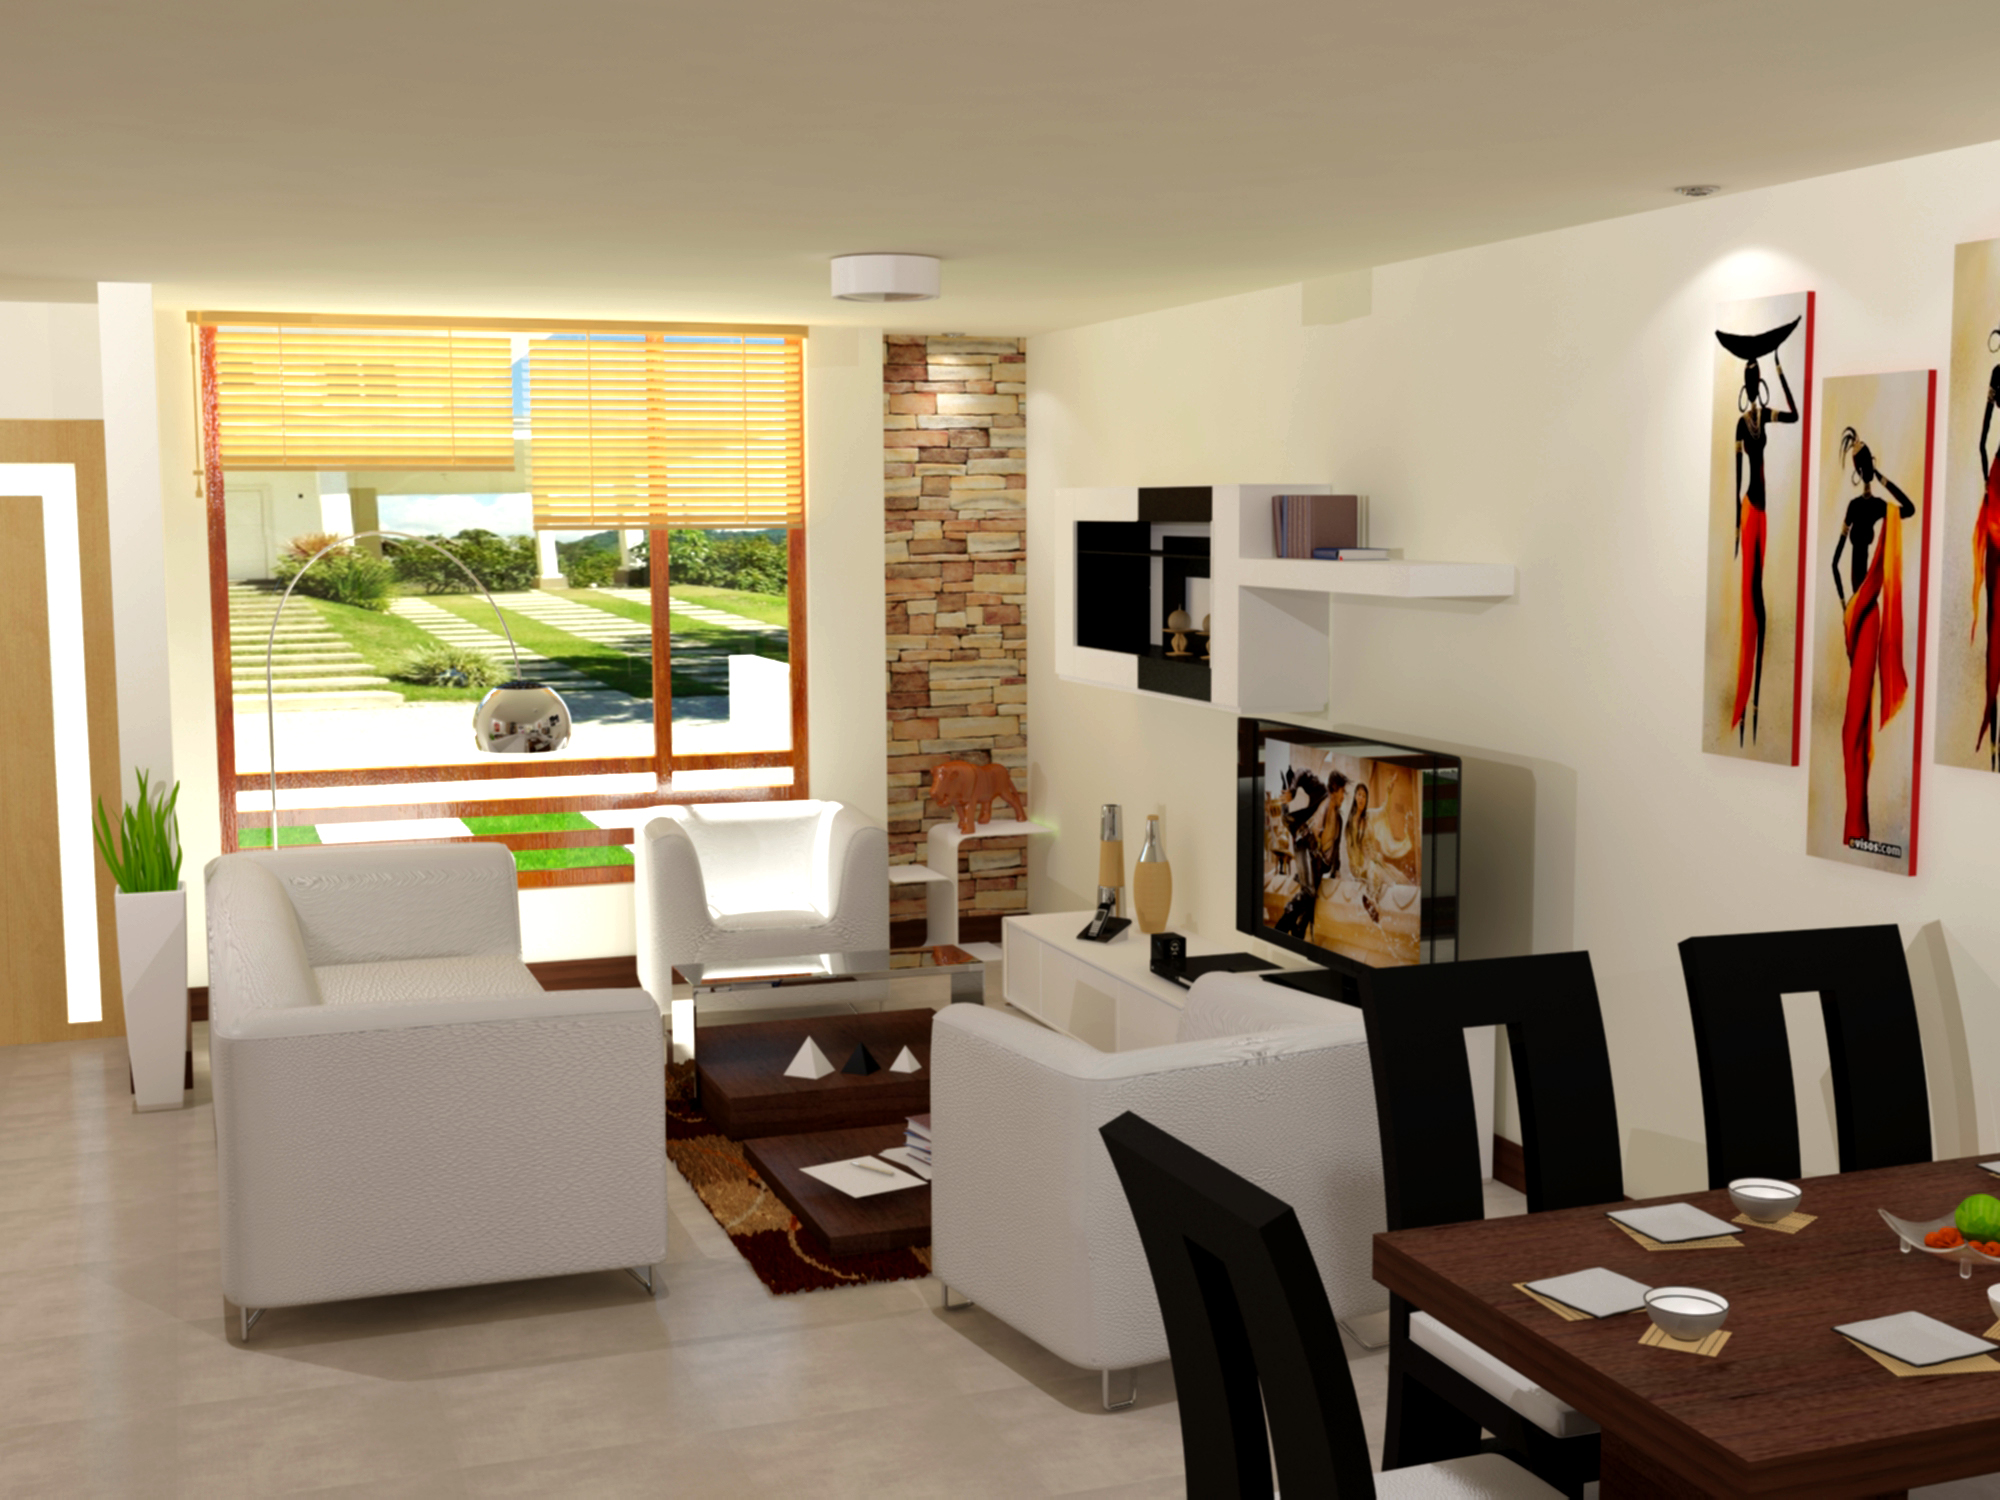 Como decorar una casa innovadoras ideas para ti - Ideas para decorar interiores ...